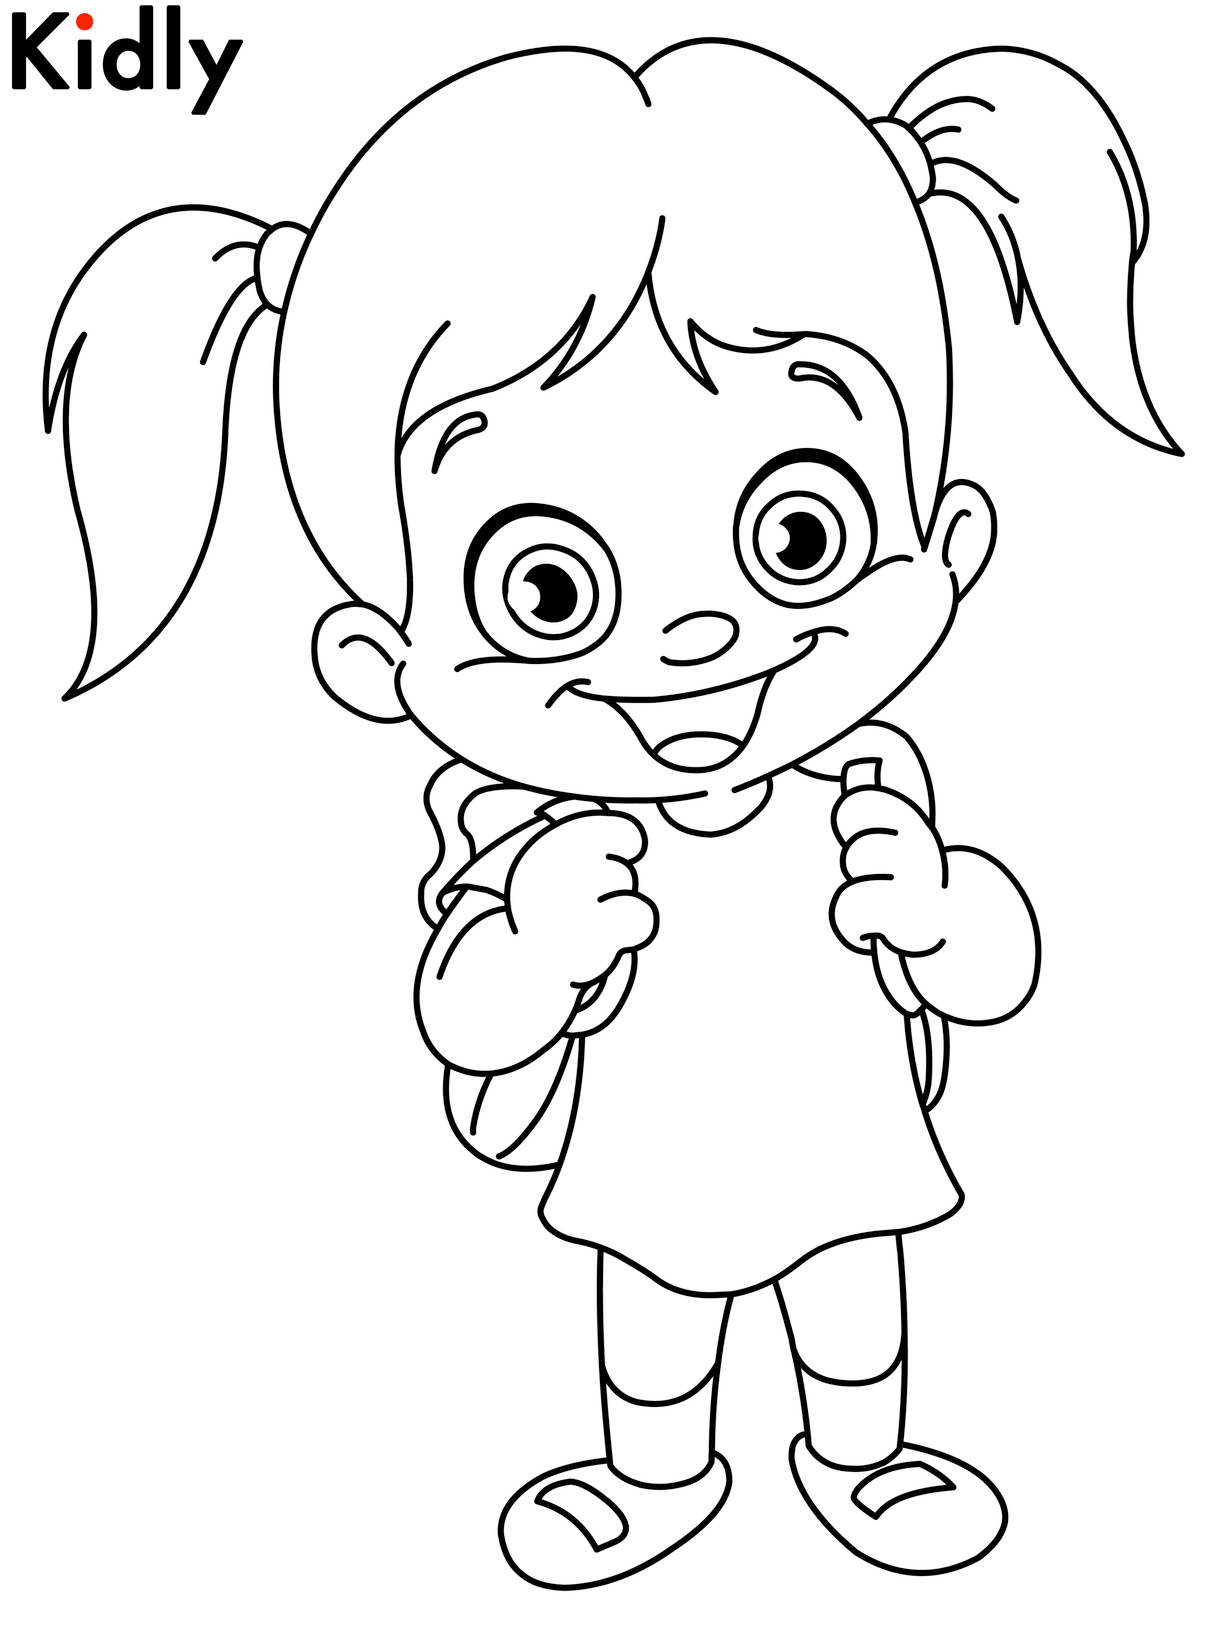 little girl coloring pictures happy girl coloring pages download and print for free little pictures coloring girl